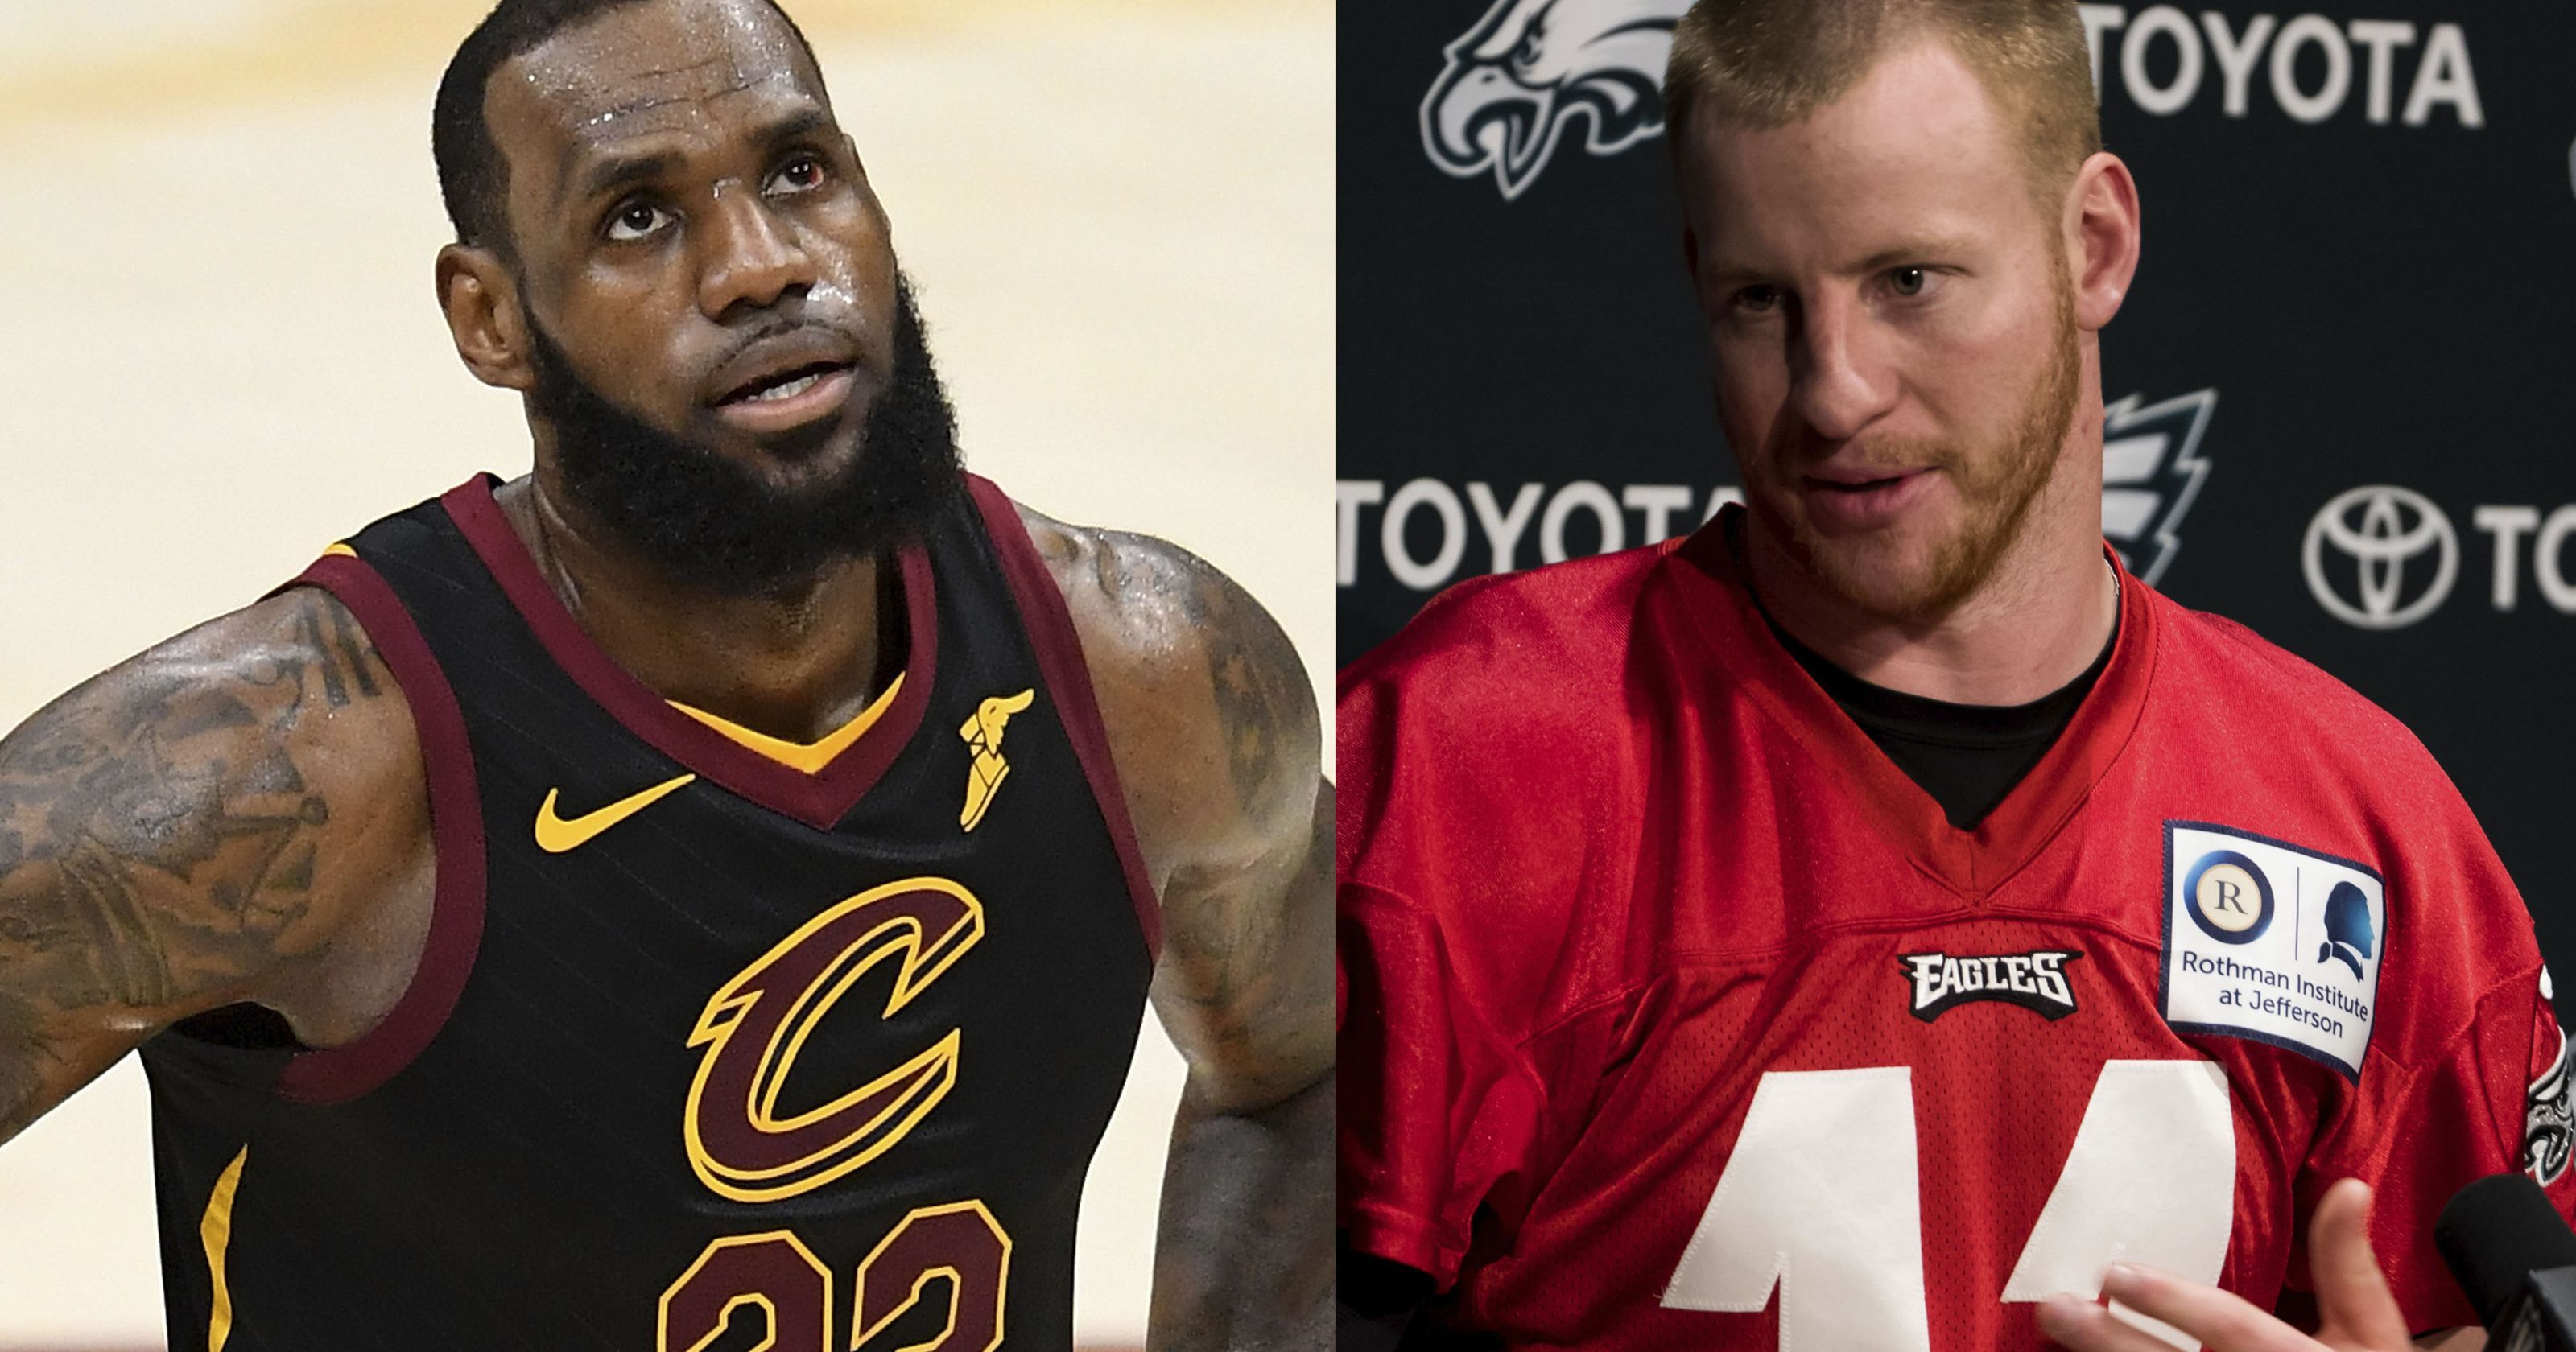 Carson Wentz says he'd 'absolutely' help recruit LeBron to